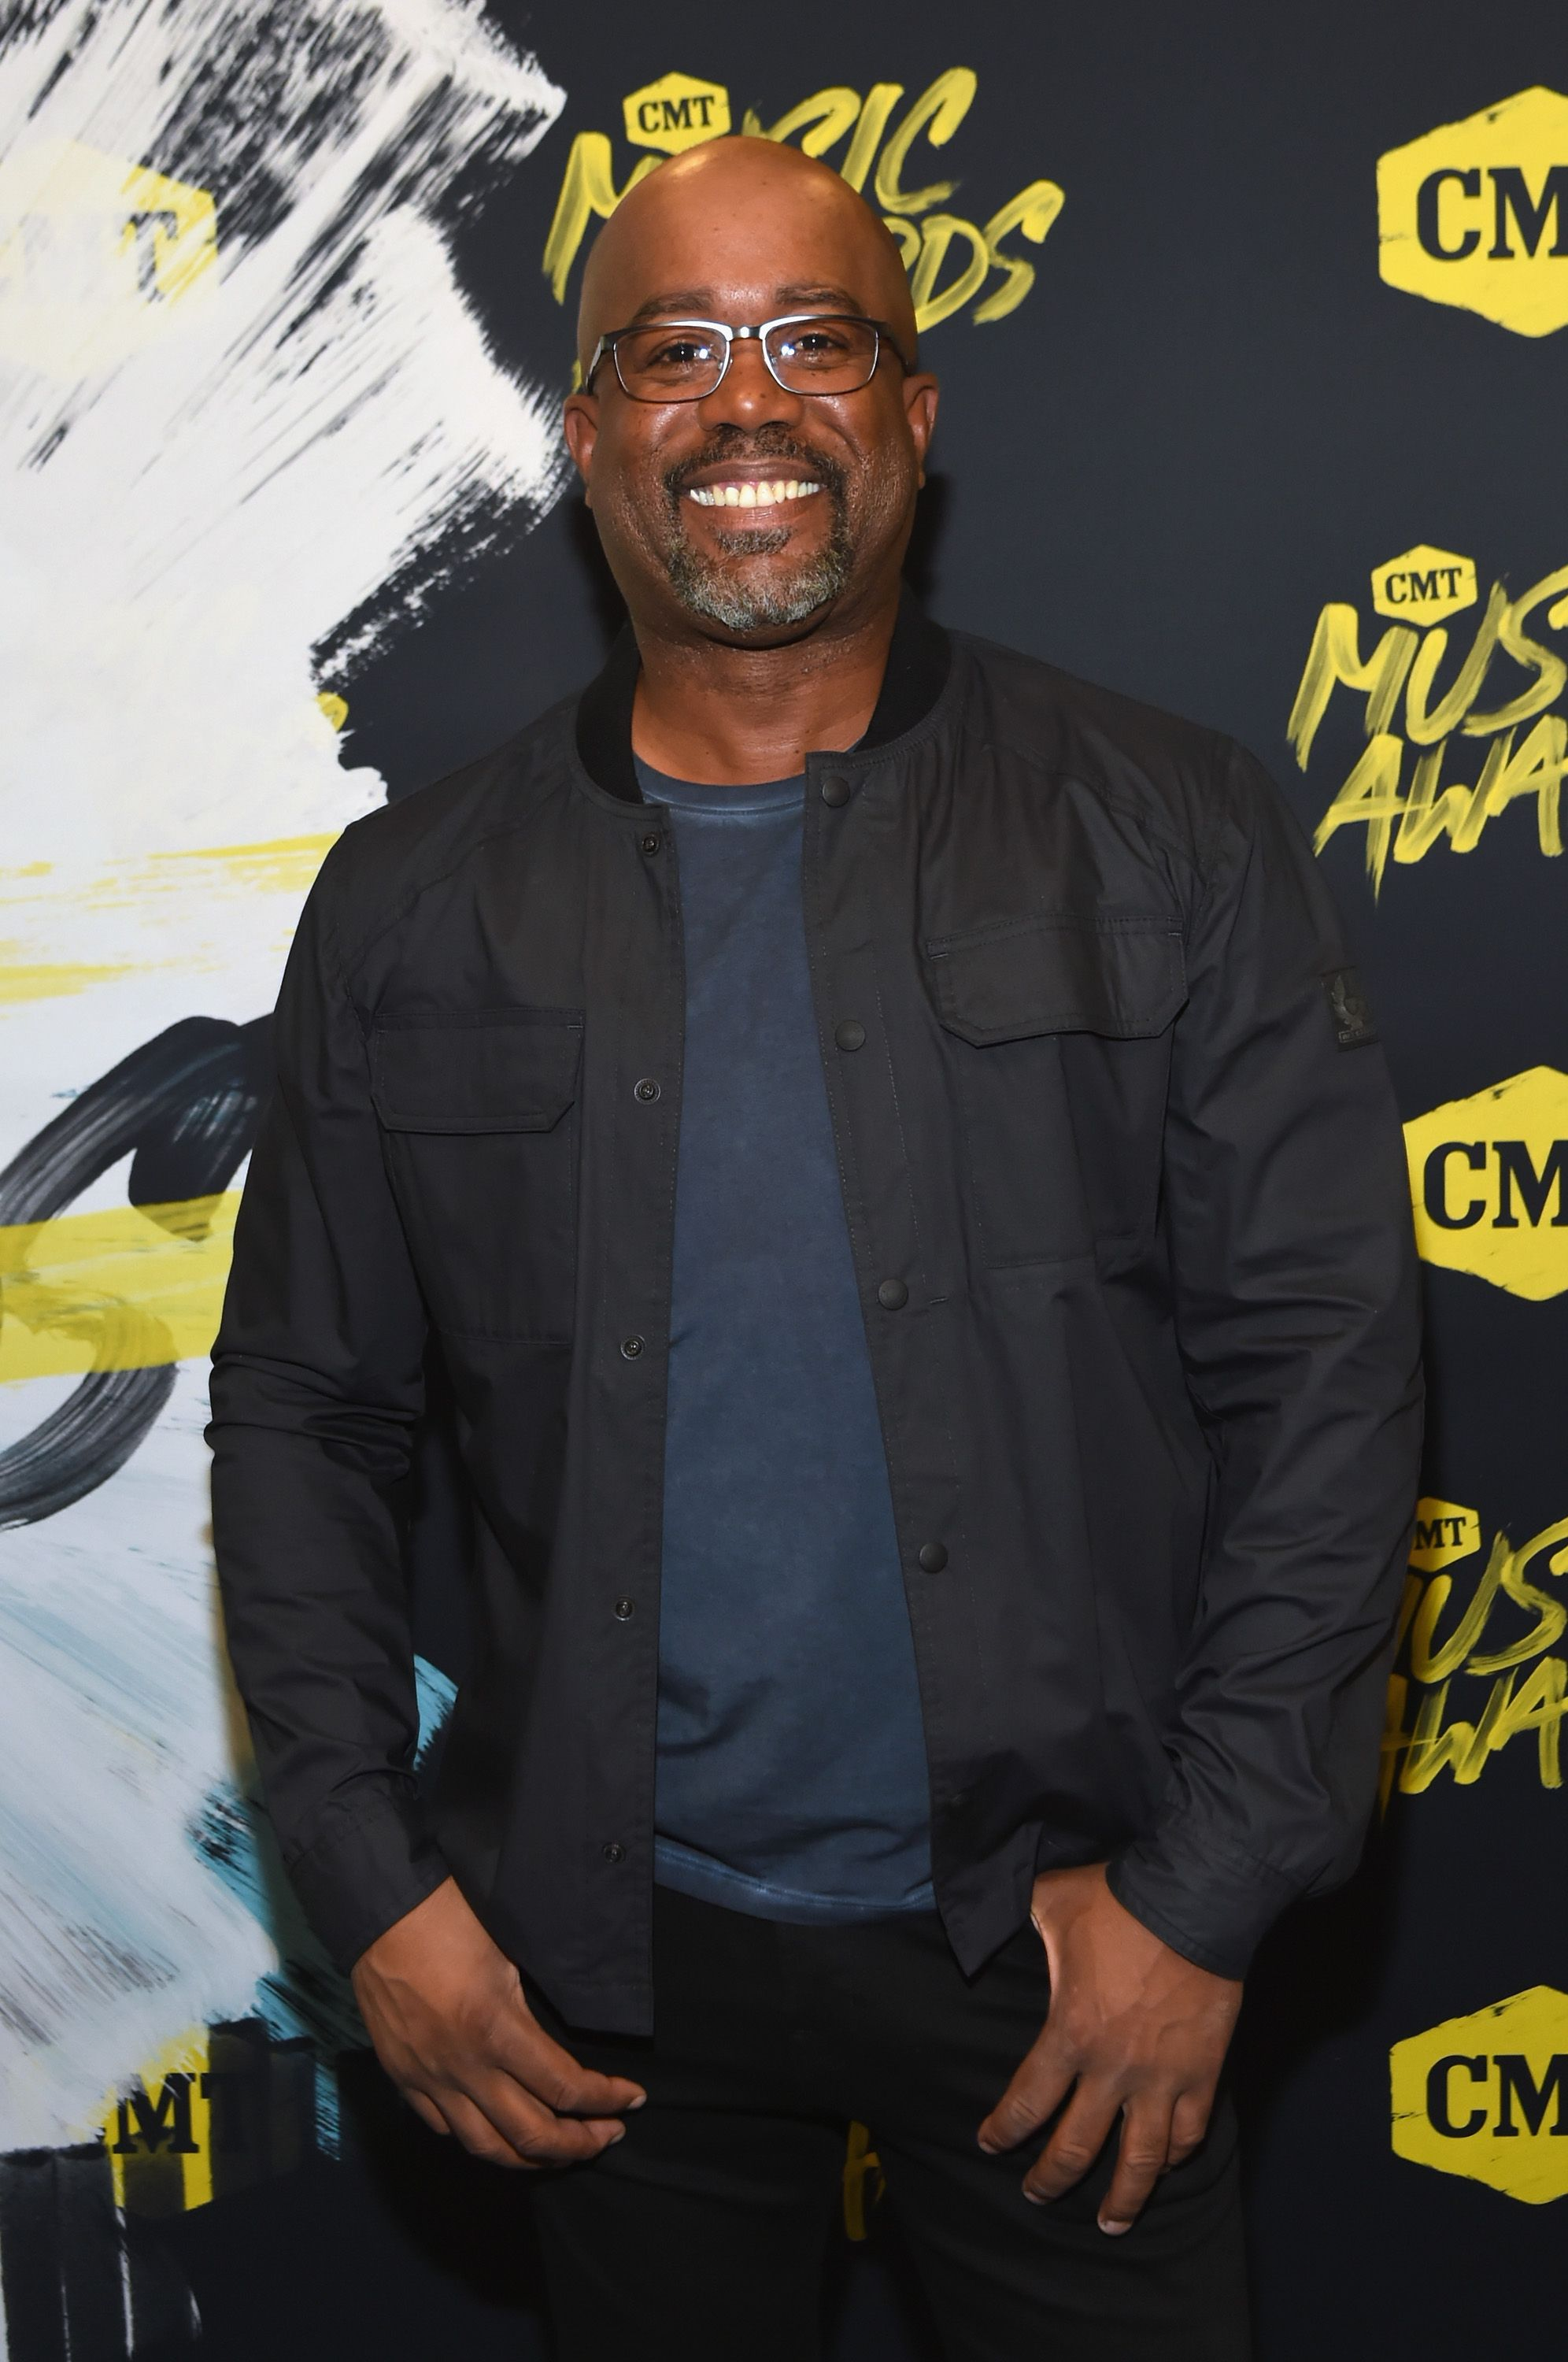 Darius Rucker at Bridgestone Arena on June 6, 2018 in Nashville, Tennessee. | Photo: Getty Images